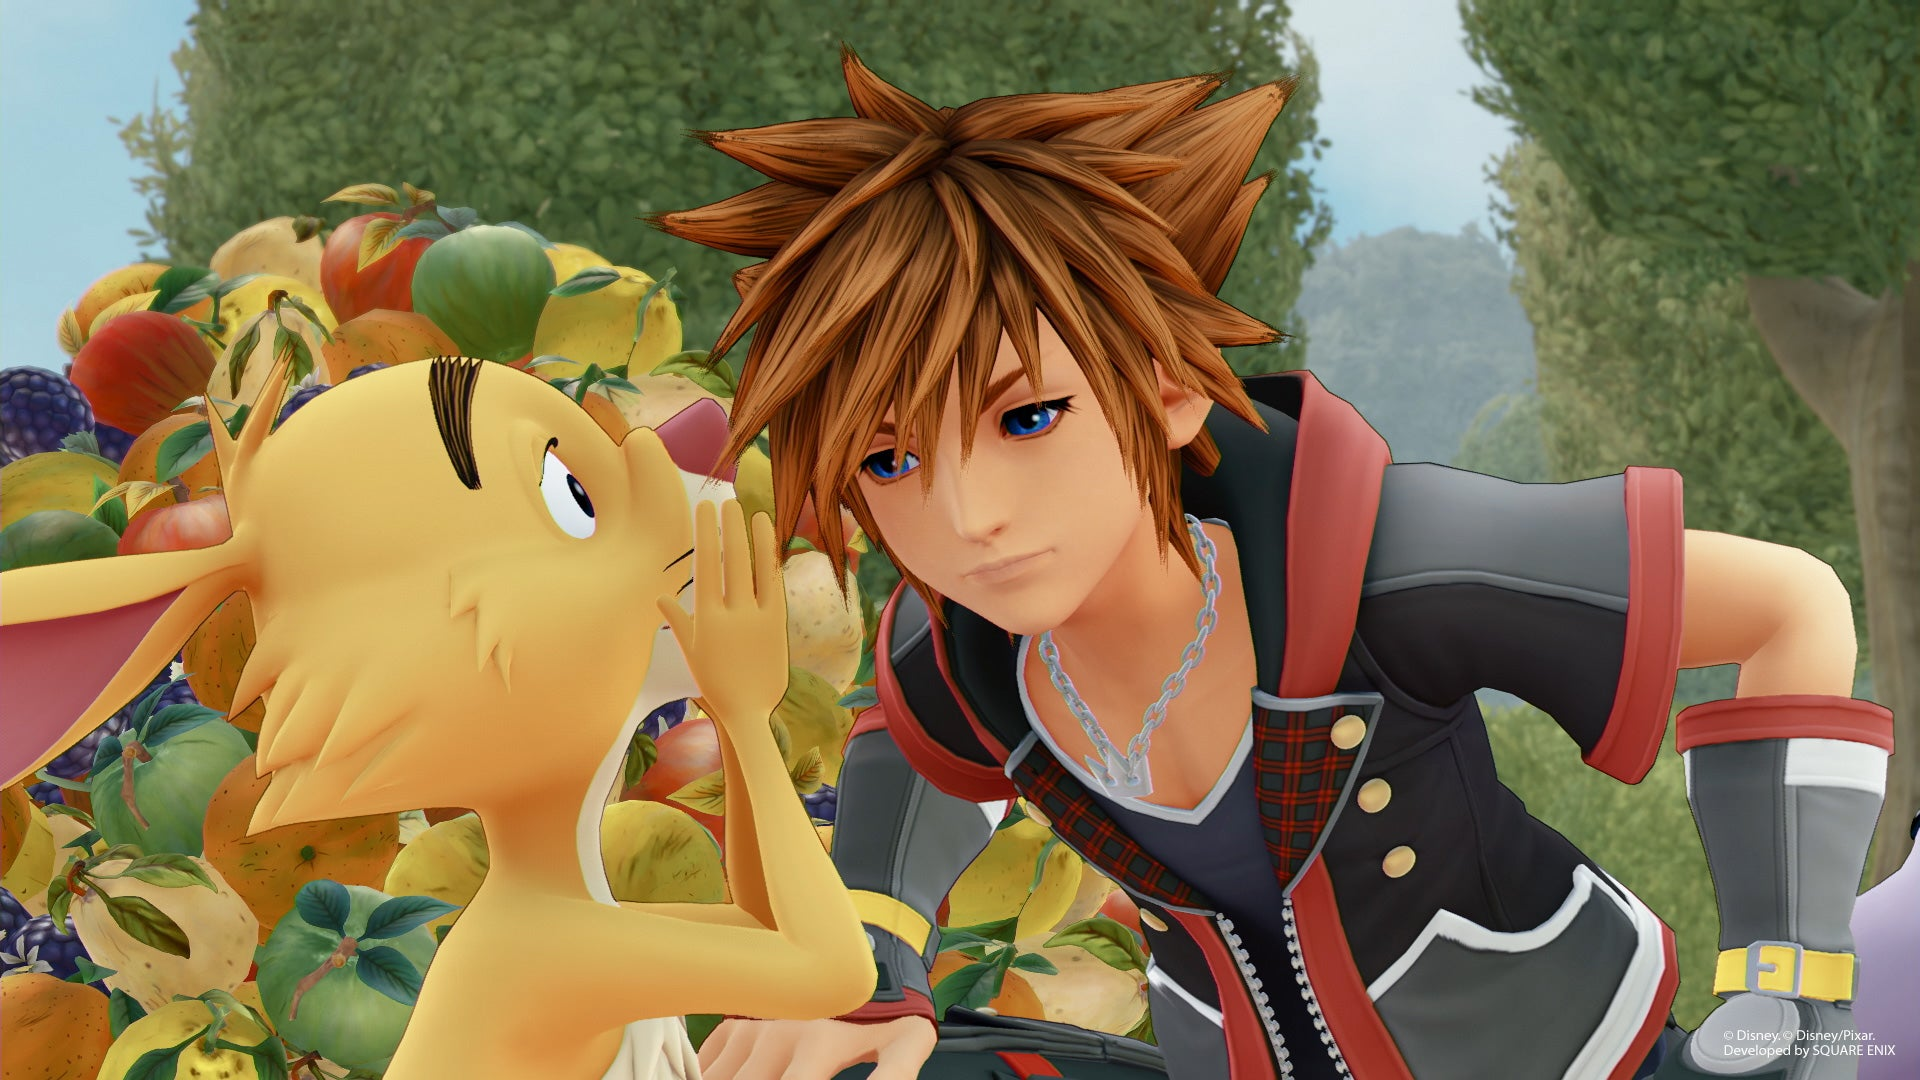 Kingdom Hearts 3Warns Users About Making 'Commercial' Livestreams And Music Streams